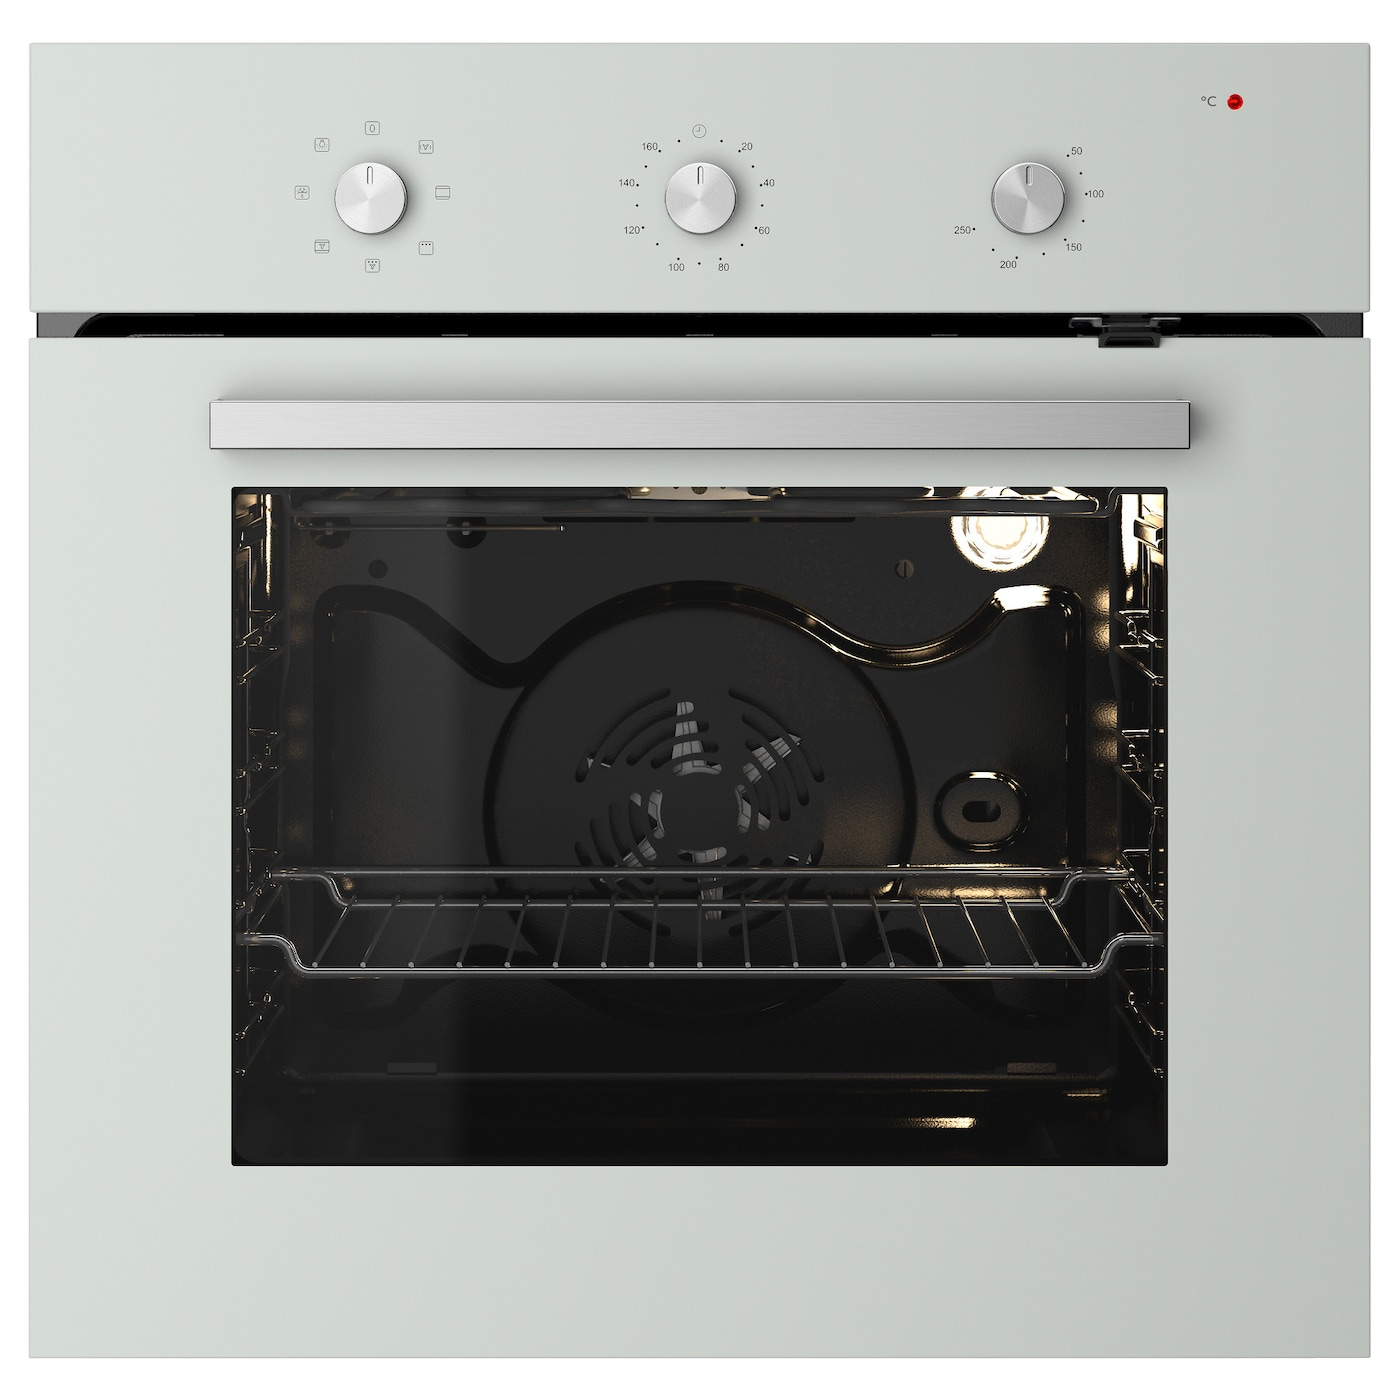 IKEA REALISTISK oven 5 year guarantee. Read about the terms in the guarantee brochure.